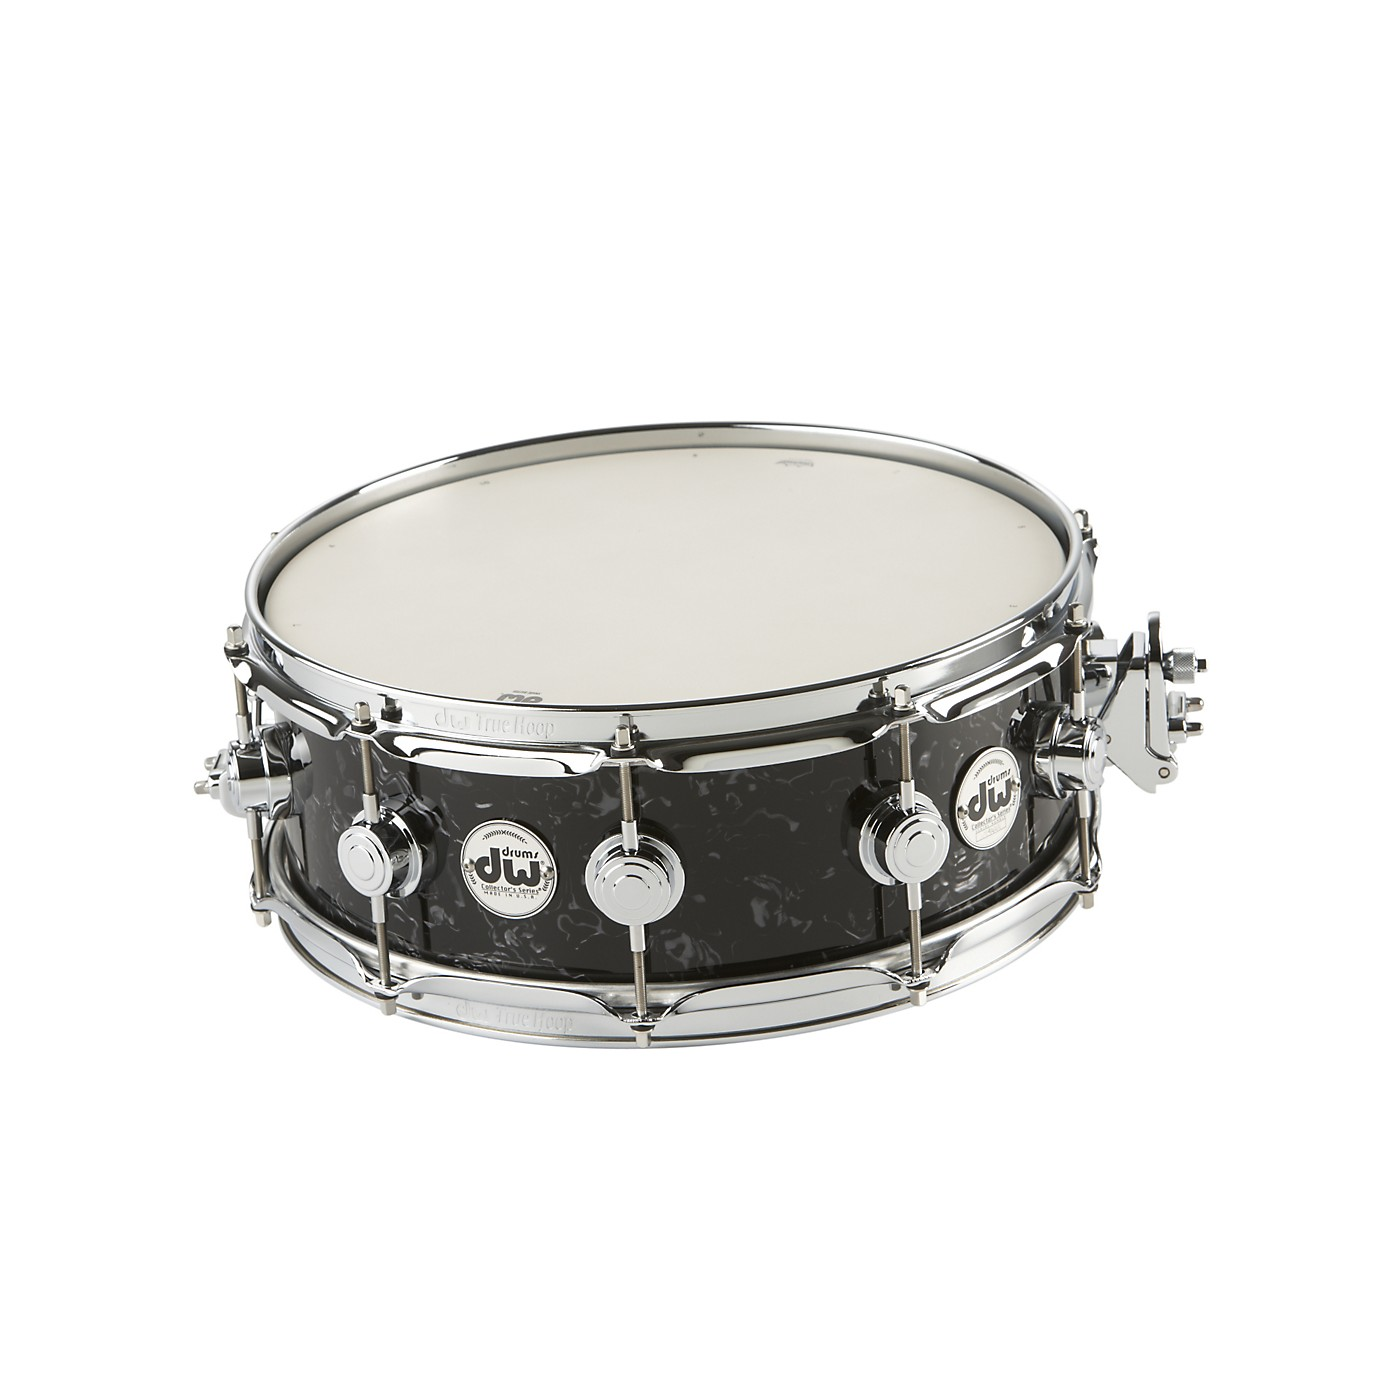 DW Collector's Series FinishPly Snare Drum thumbnail